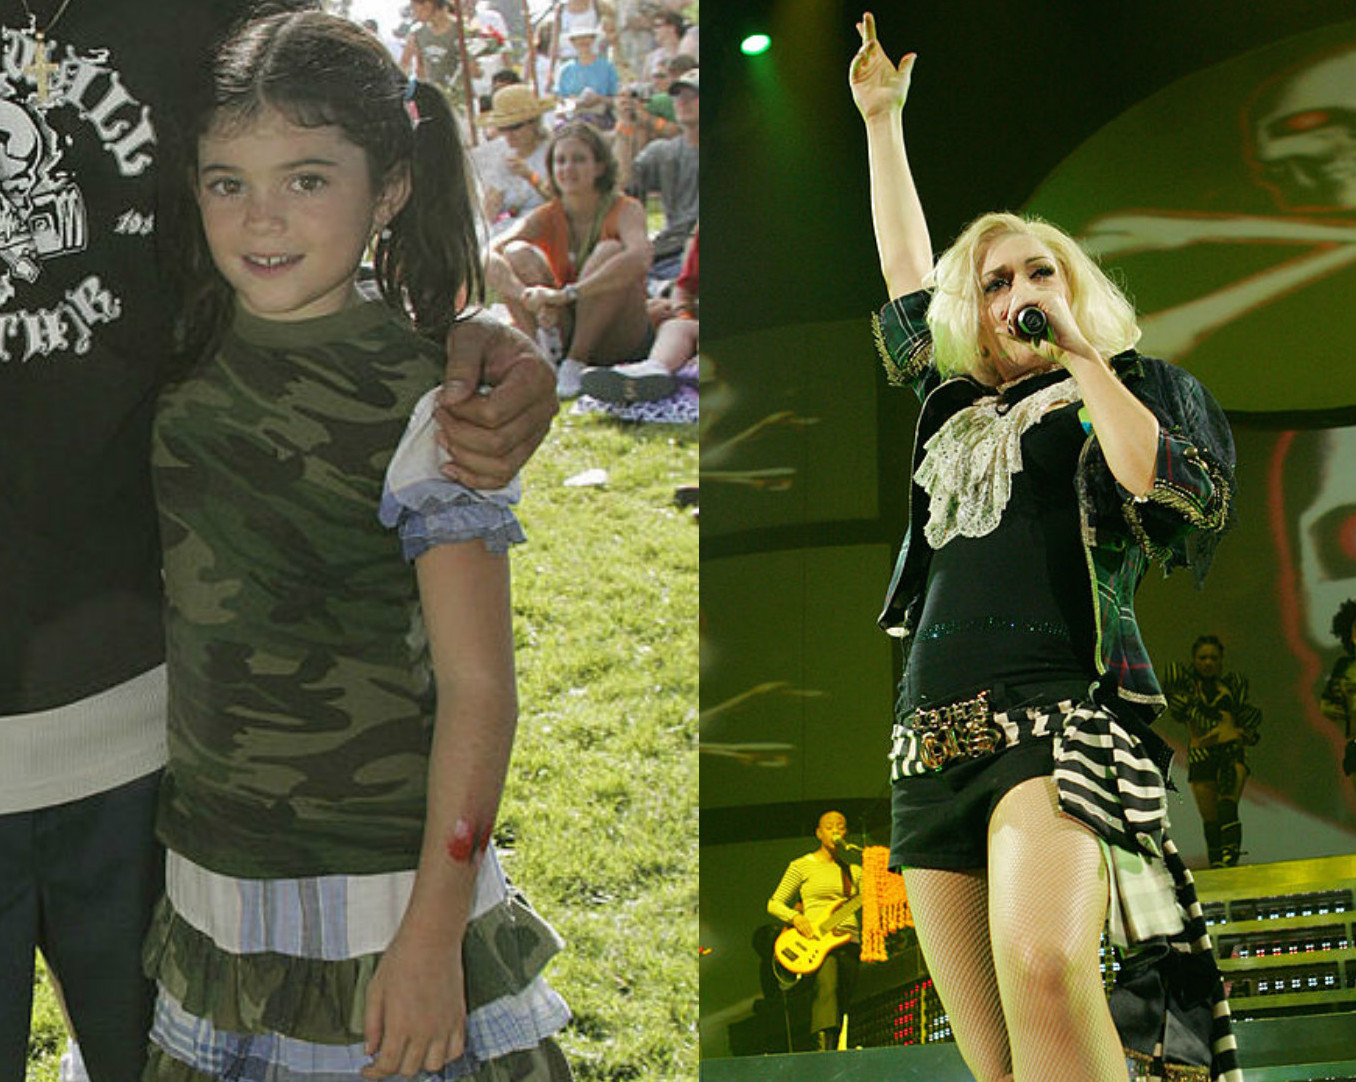 Watch this throwback video of a 7-year-old Kylie Jenner singing onstage with Gwen Stefani